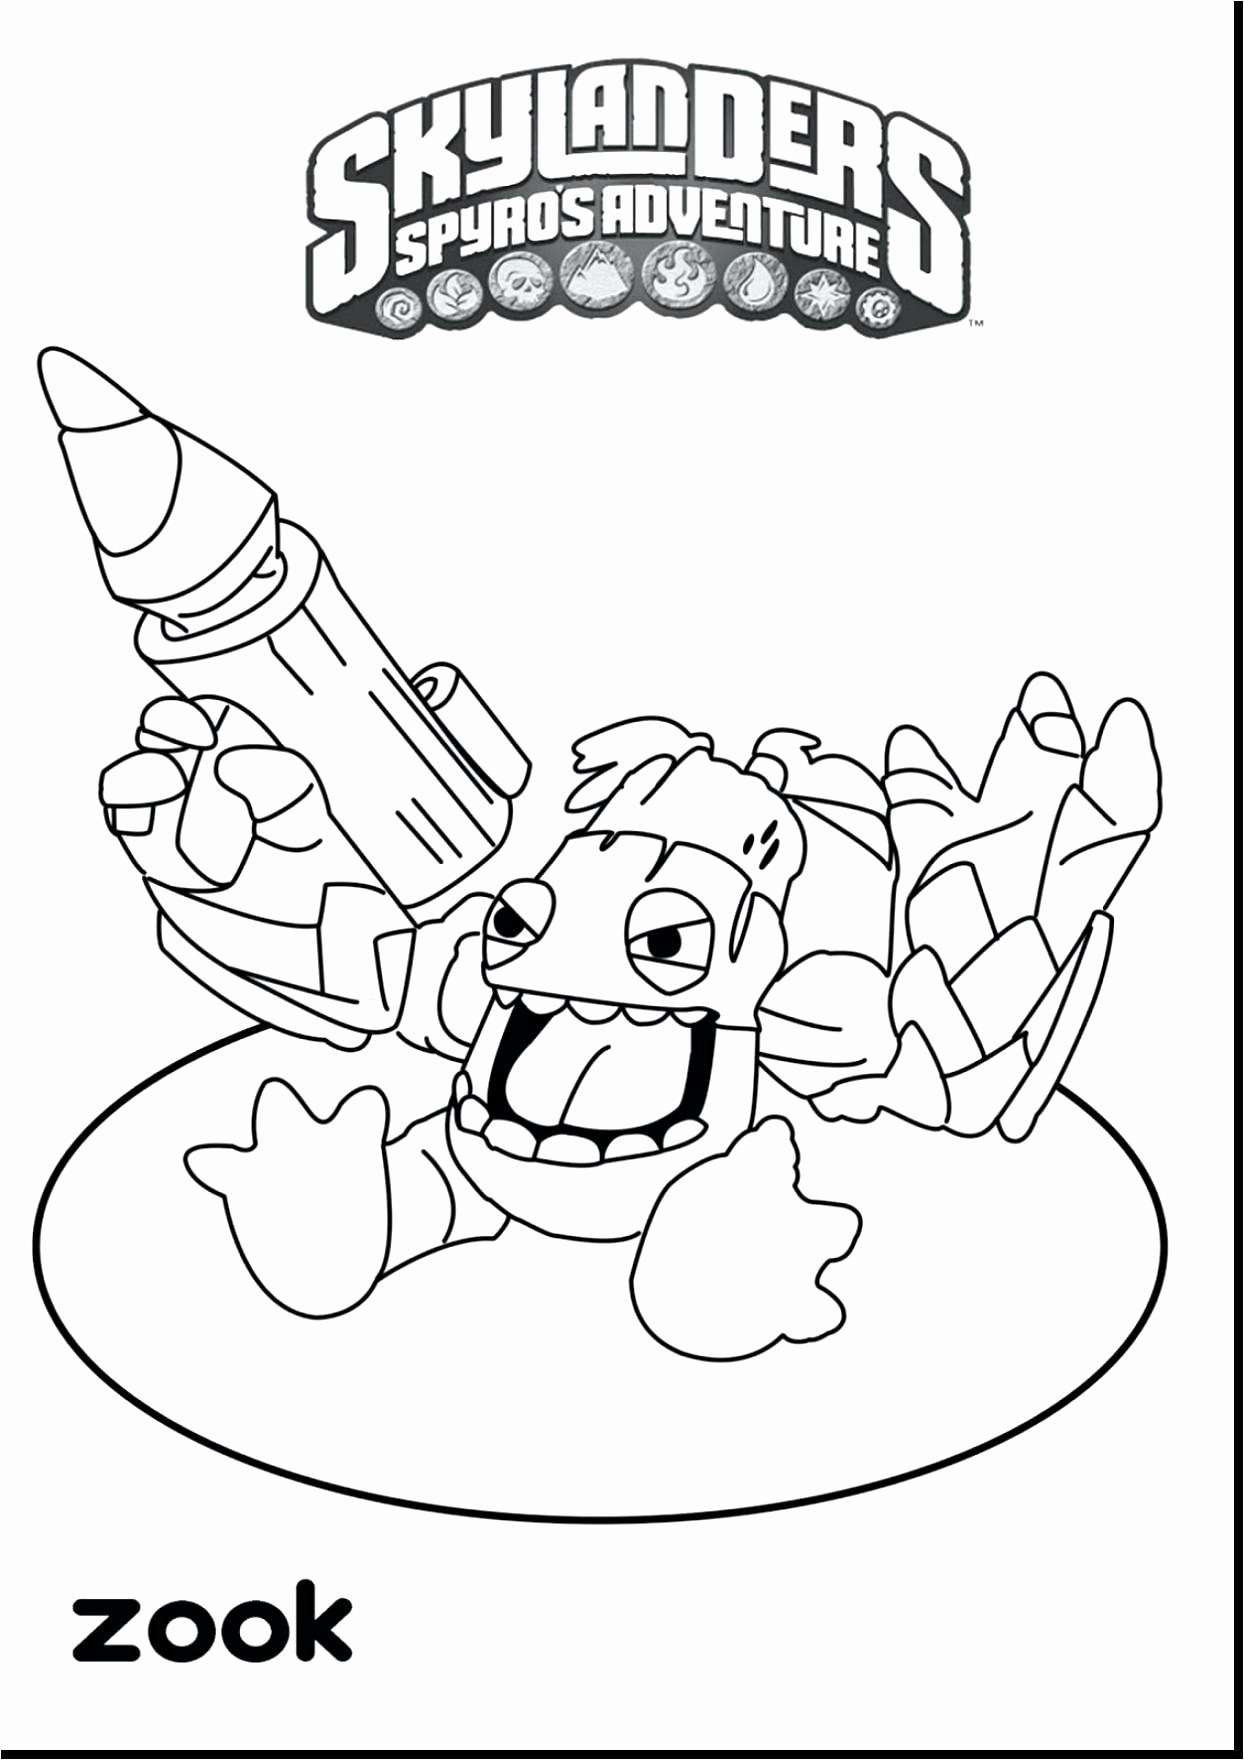 Xmas Coloring Pages Online With Shopping For Christmas Simple You